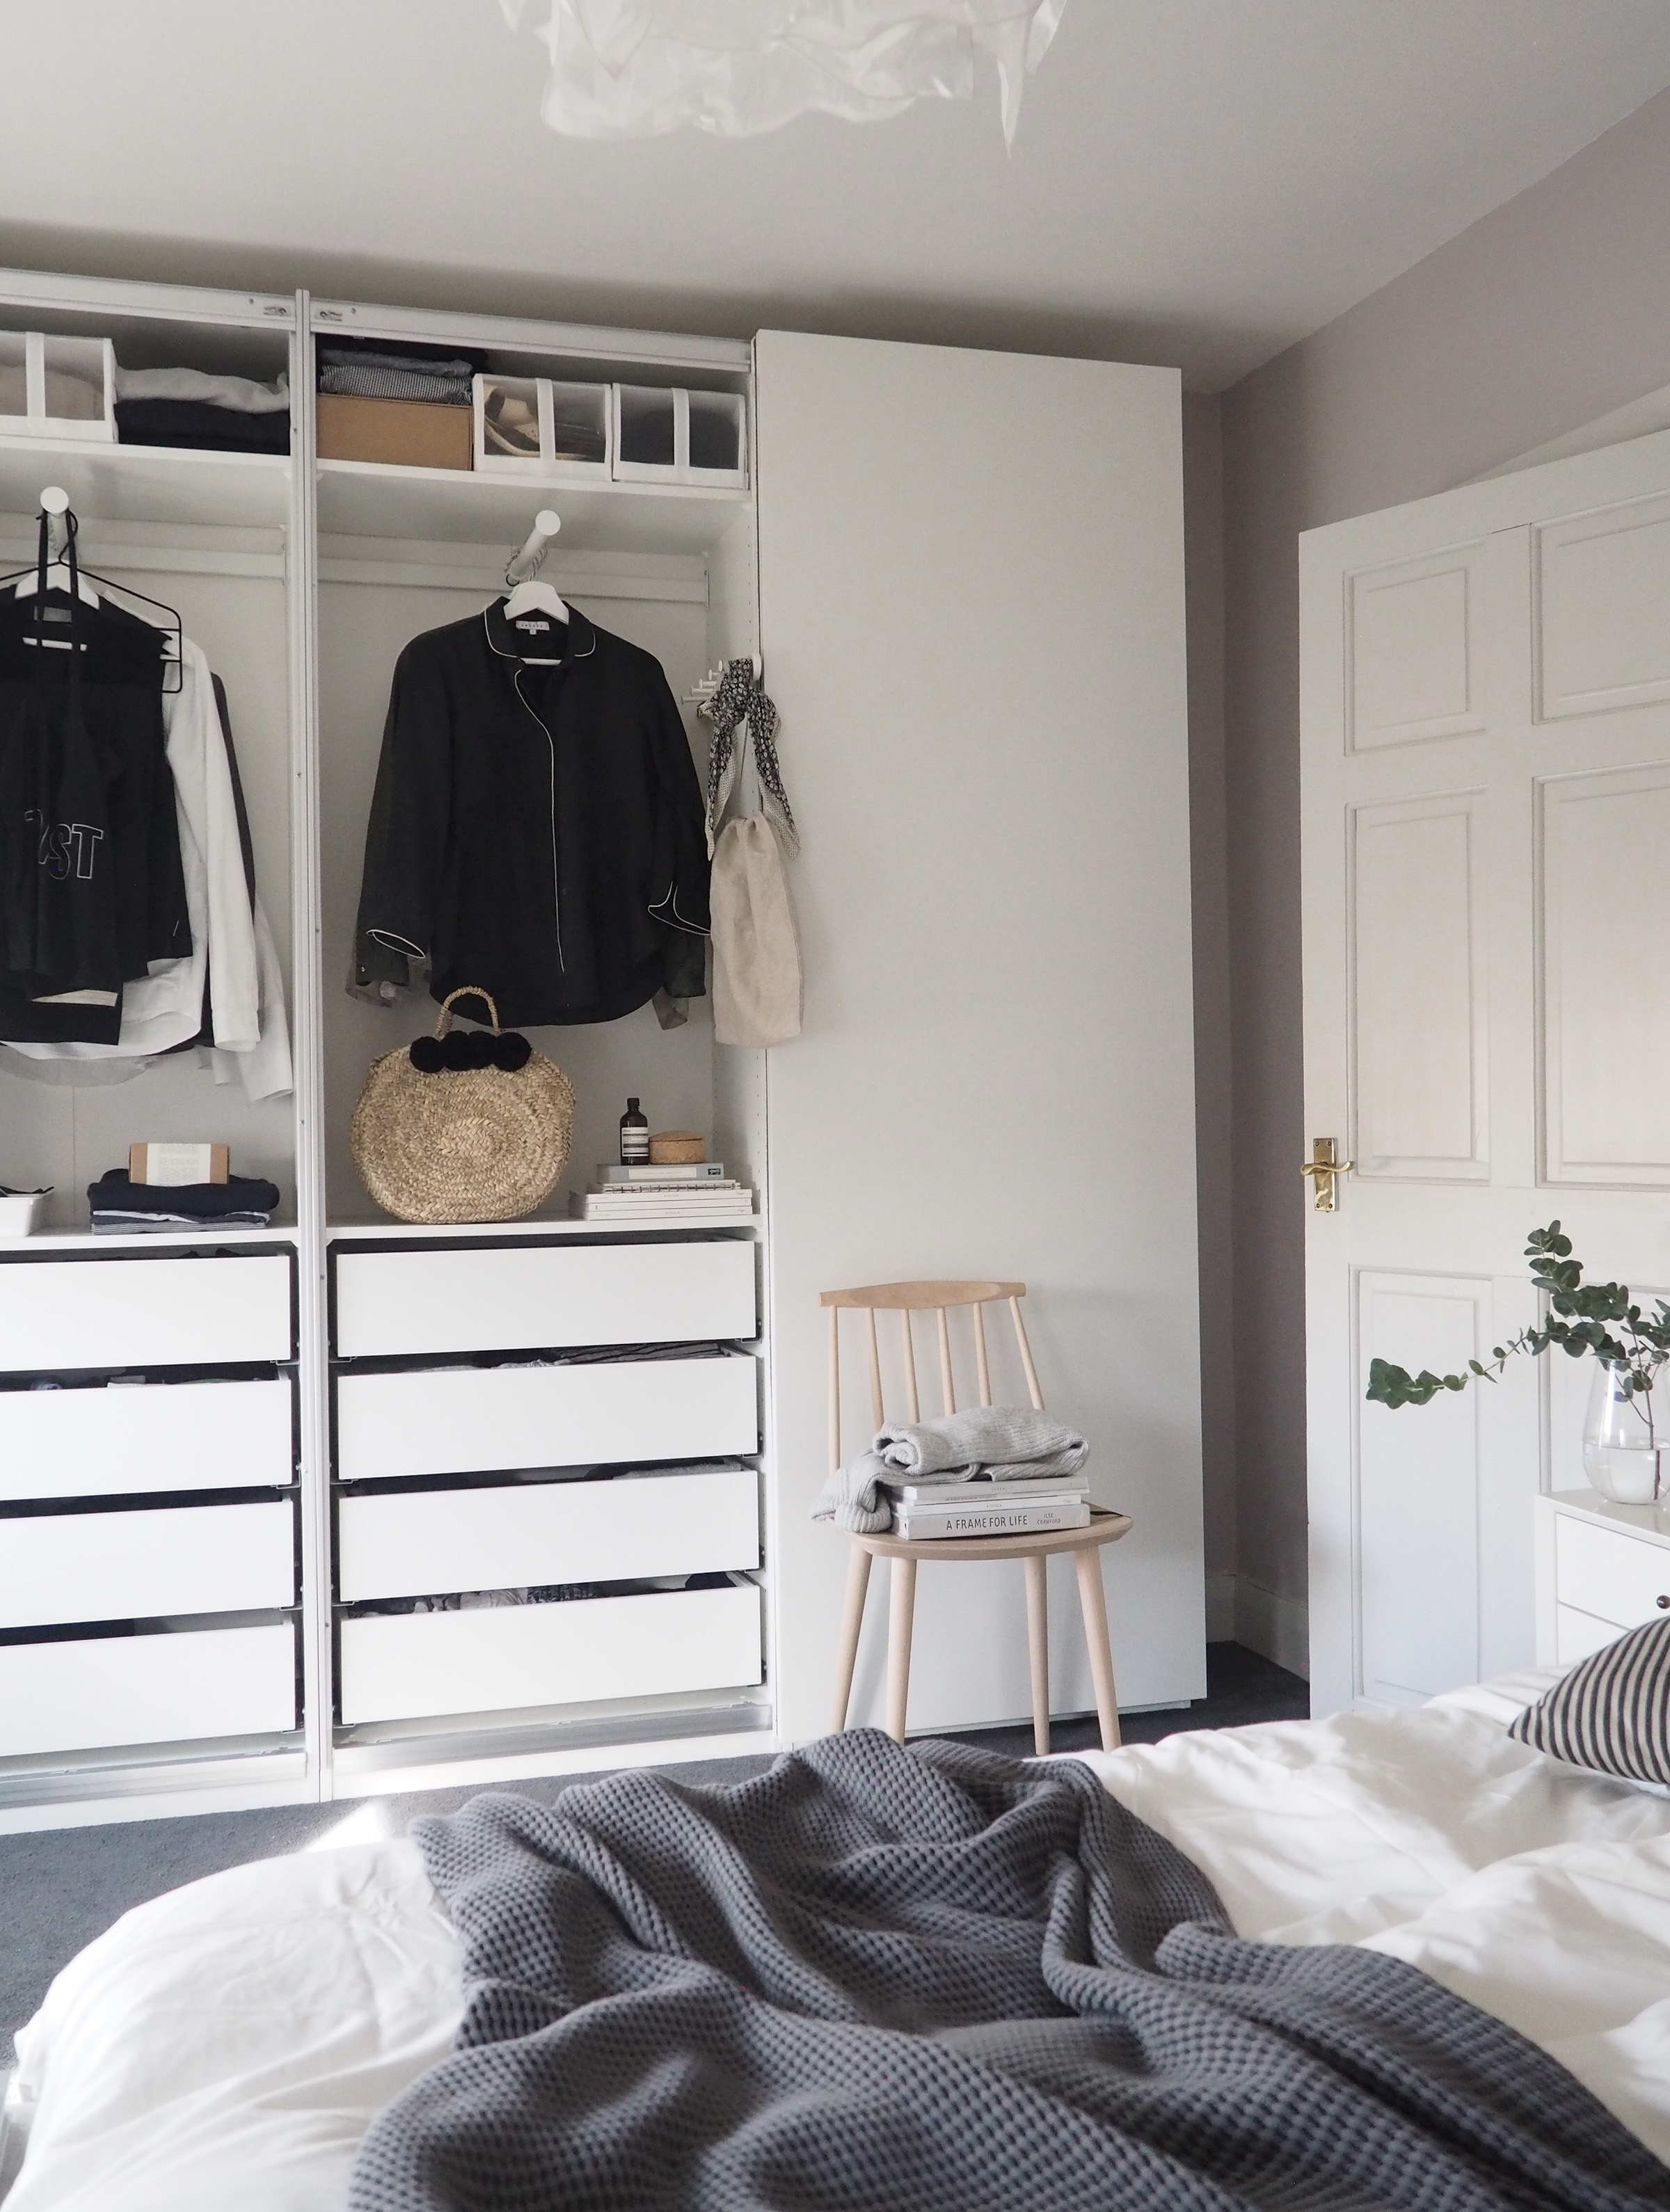 ... Bedroom Updates: Getting Organised With IKEA PAX Wardrobes ...